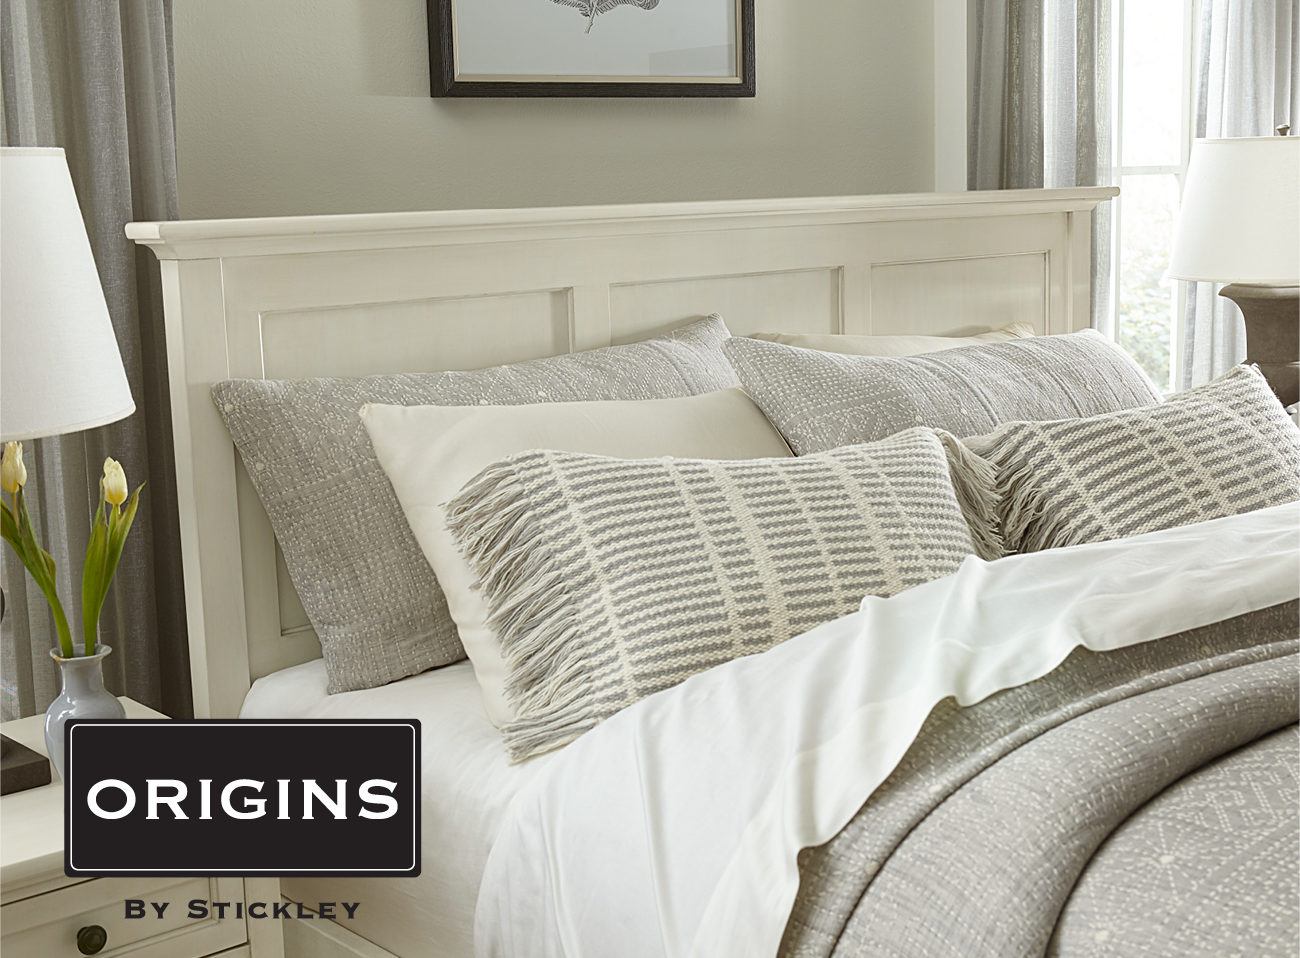 Orogins by Stickley Bed